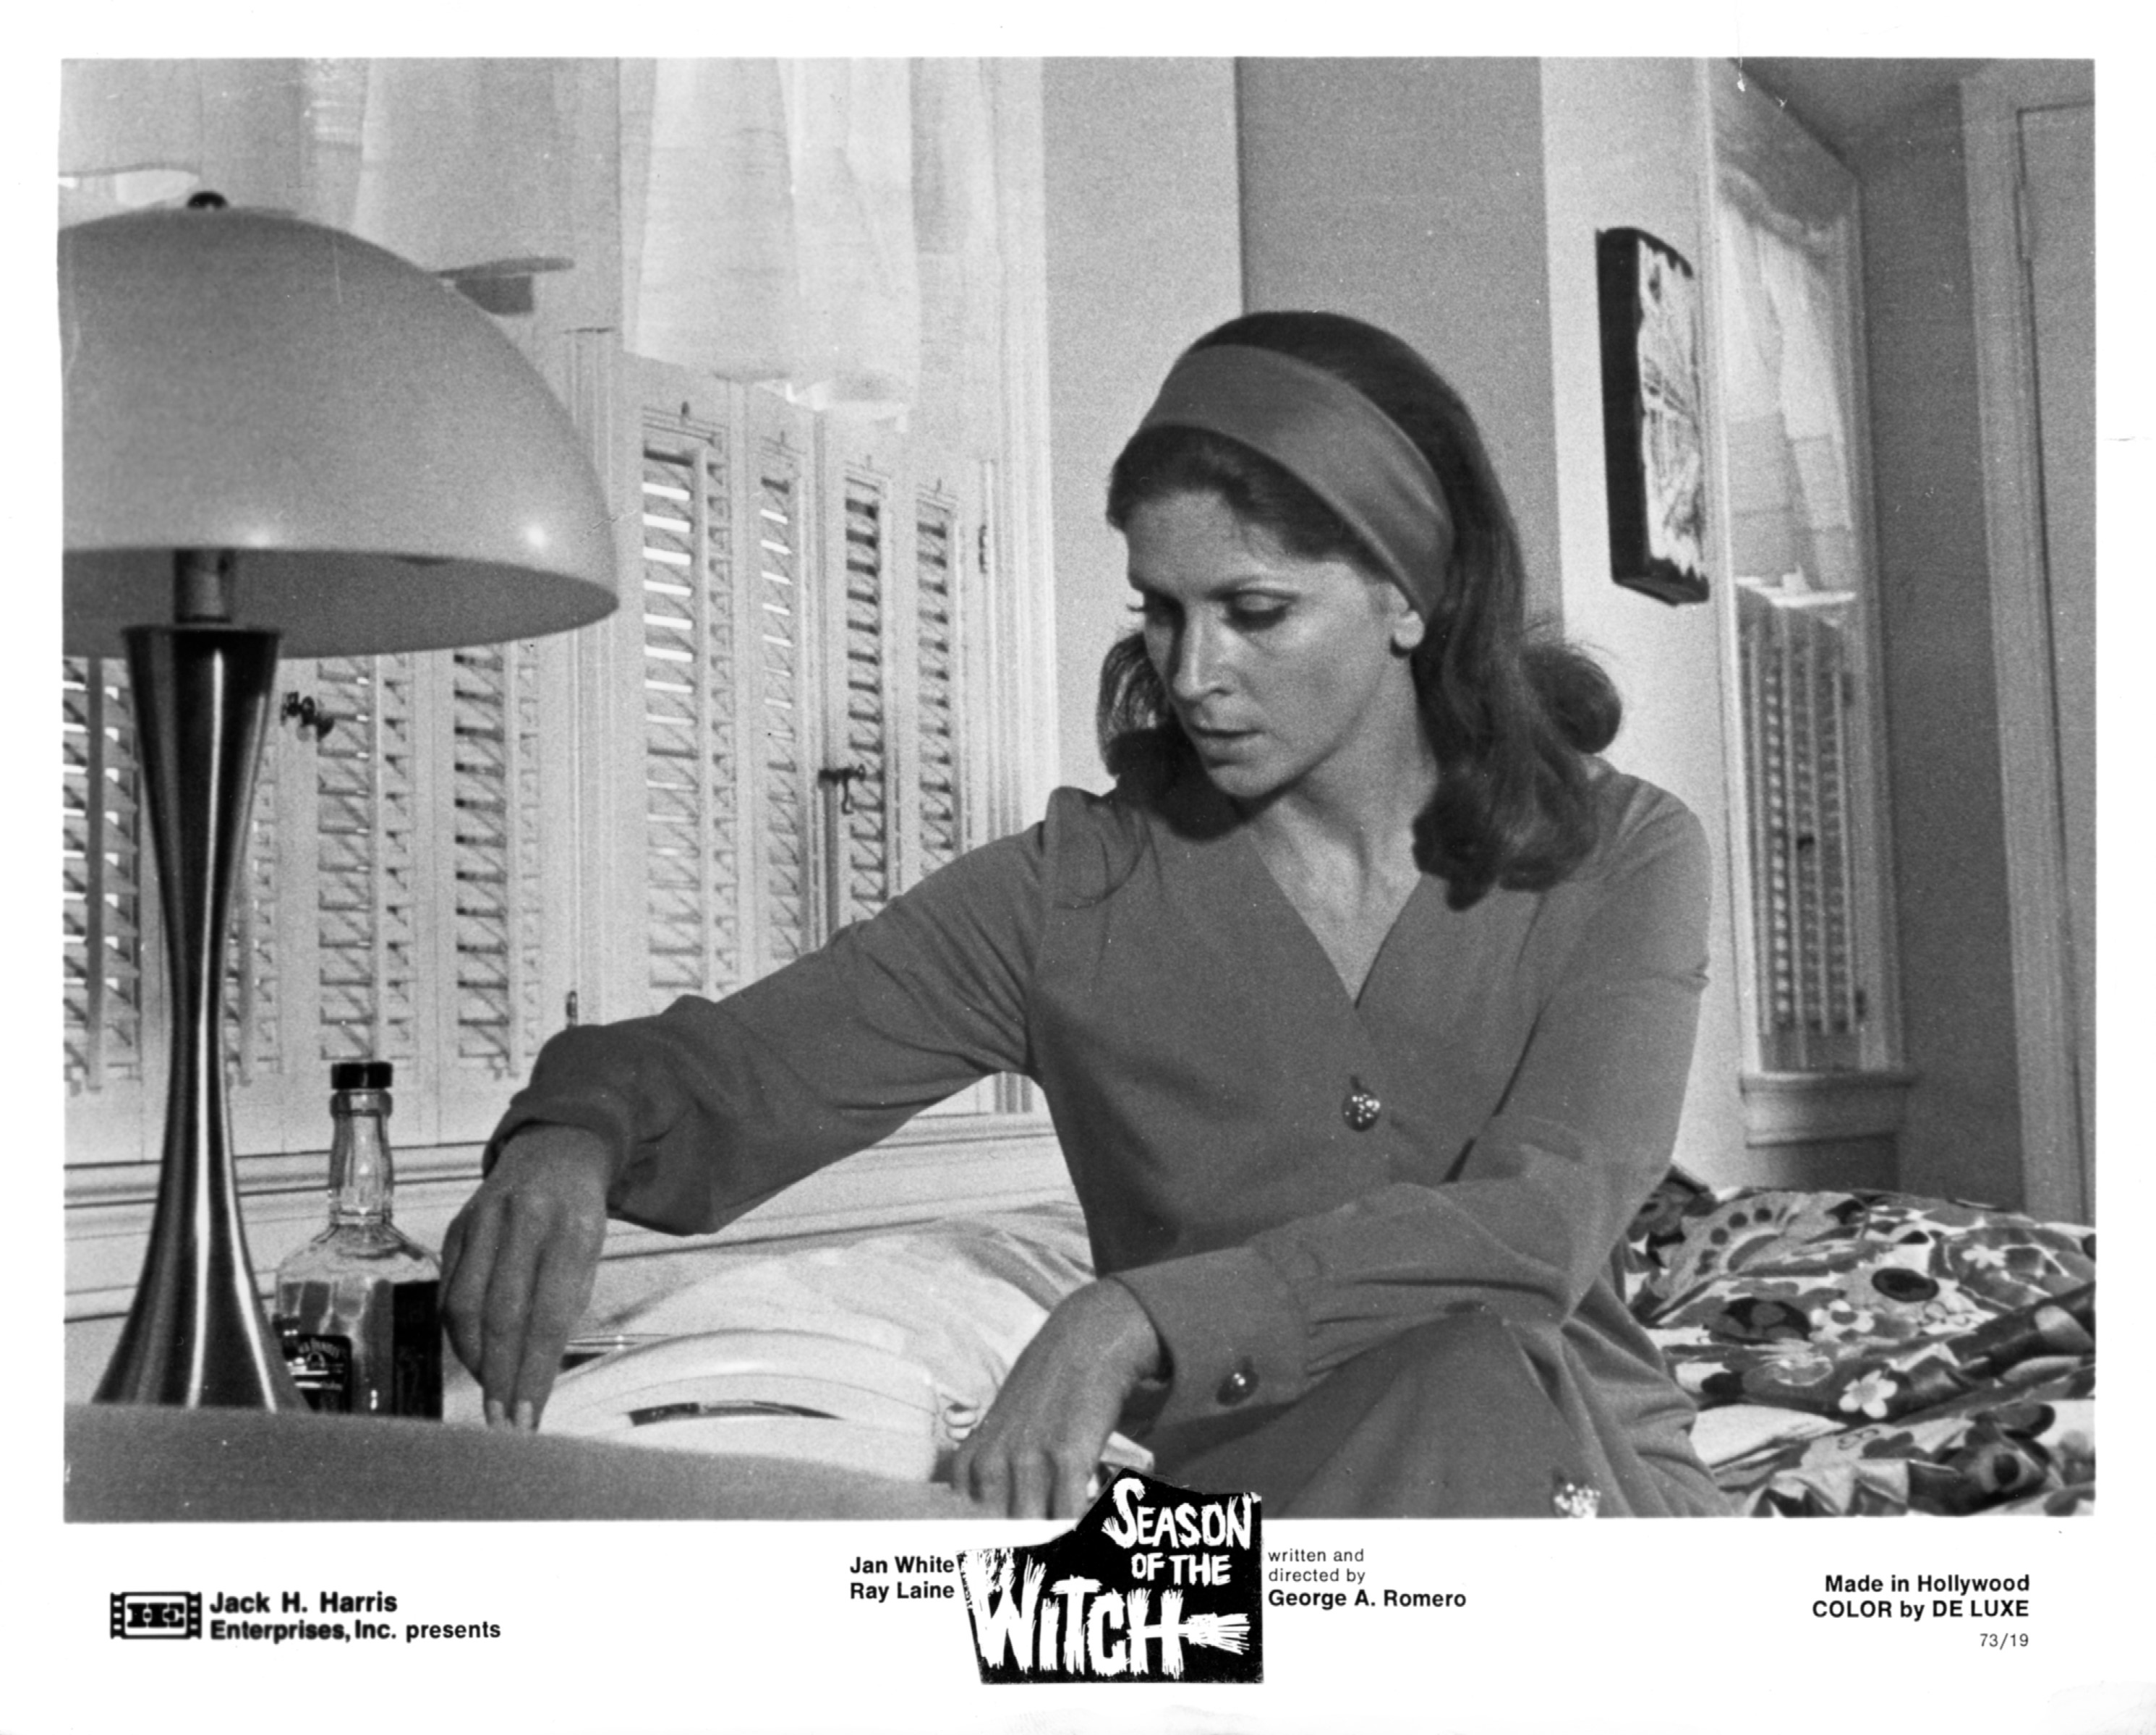 season_of_the_witch_us_press_photo_01